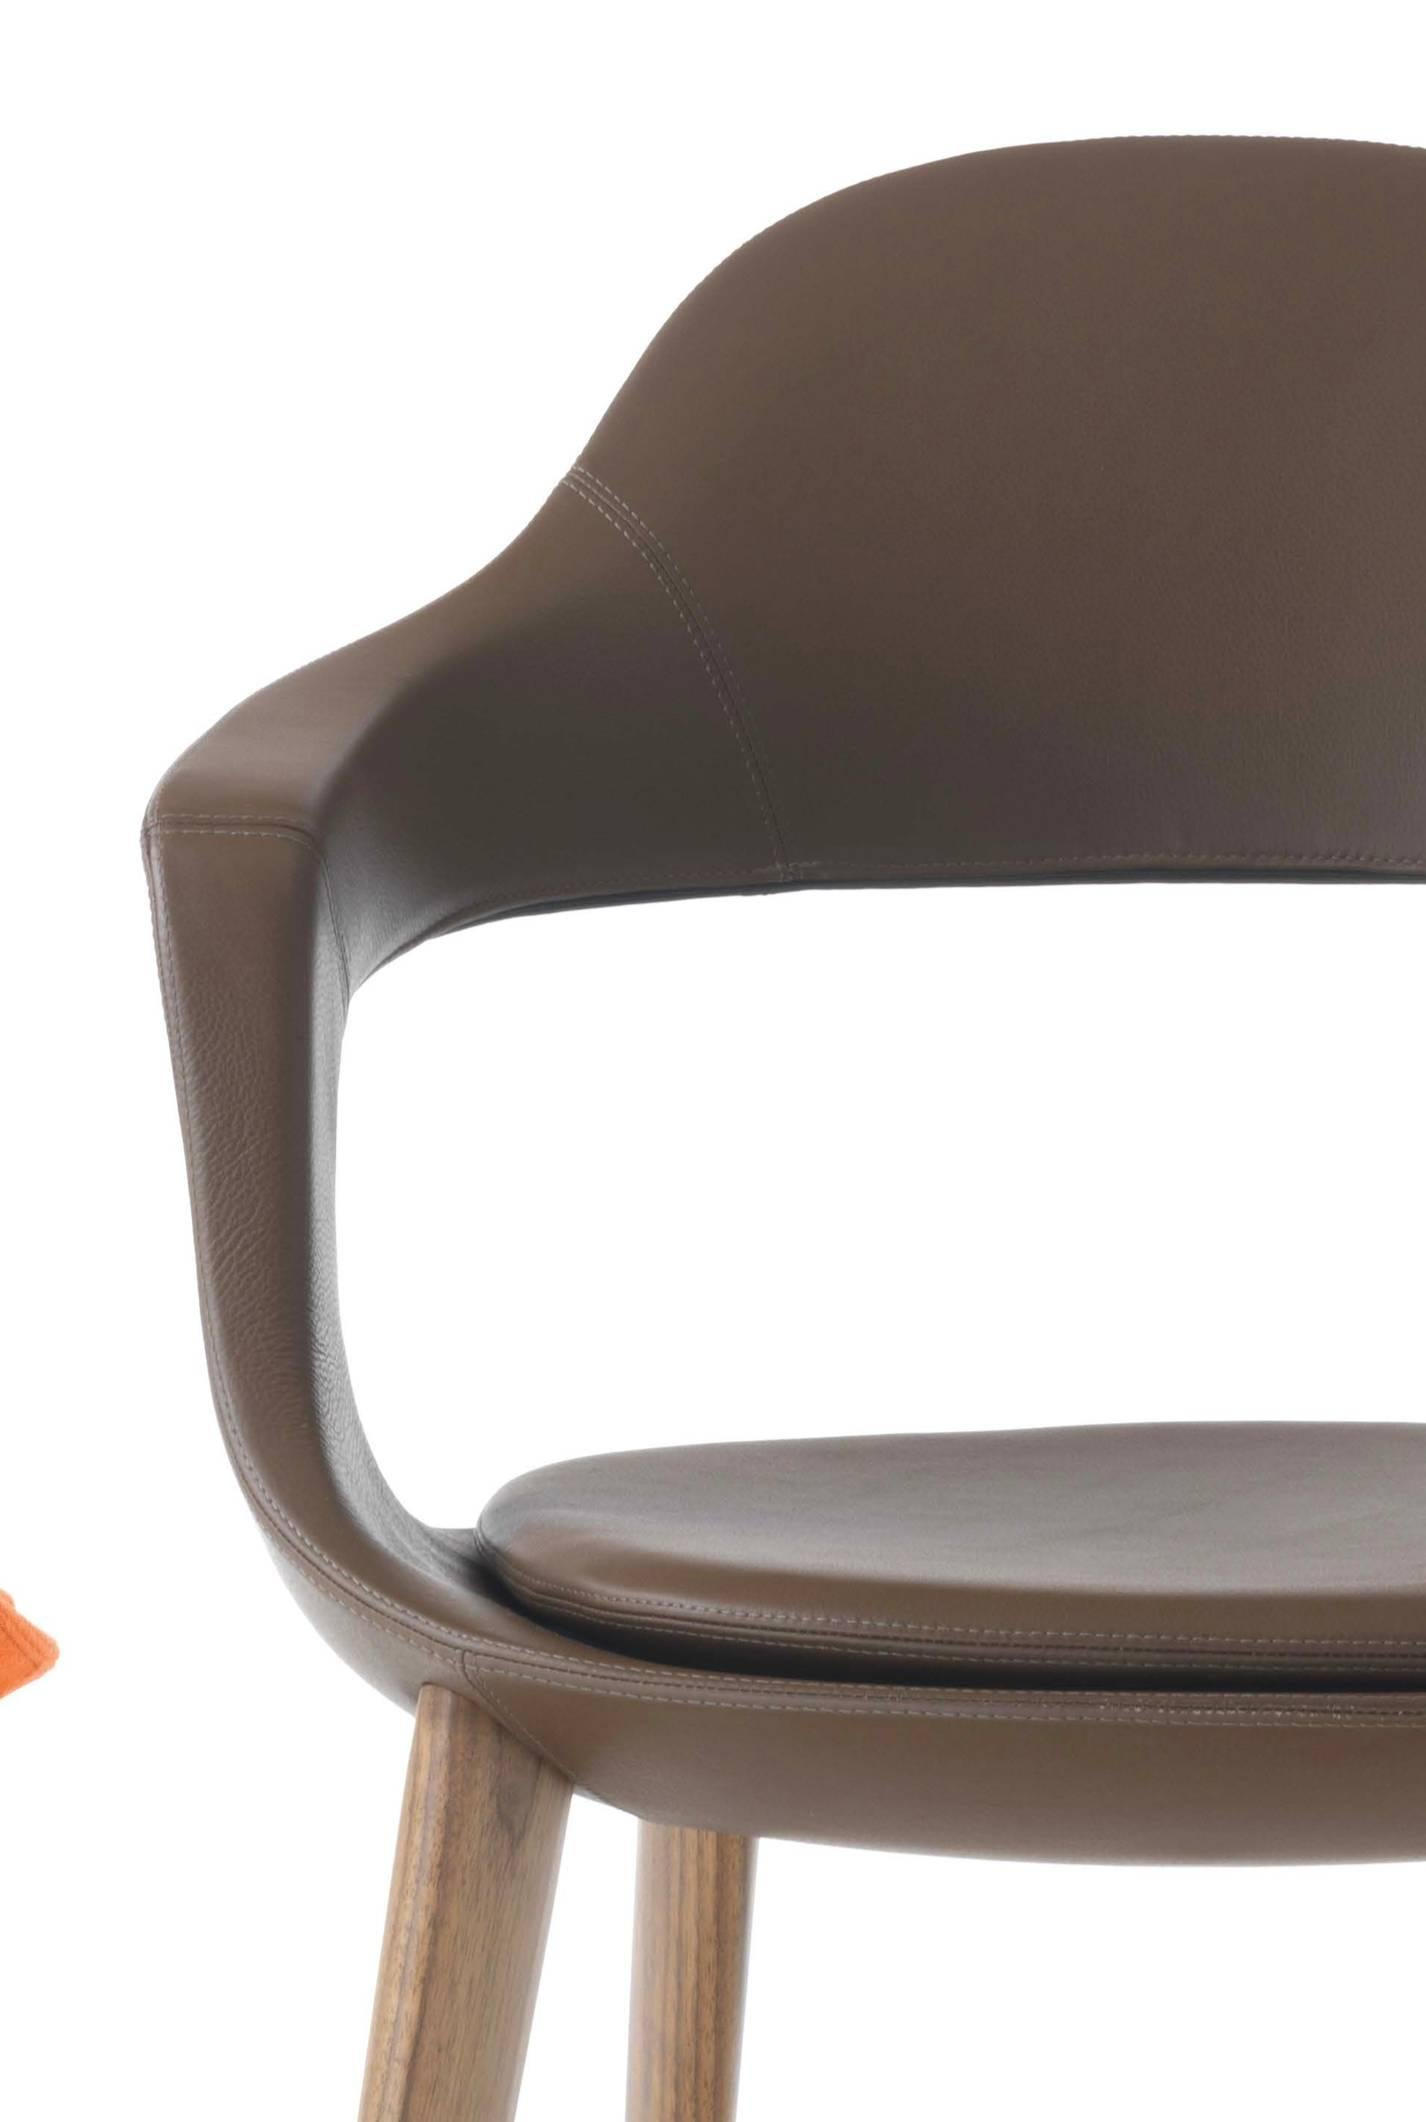 Italian Contemporary Dining Chair Made in Italy Leather For Sale at